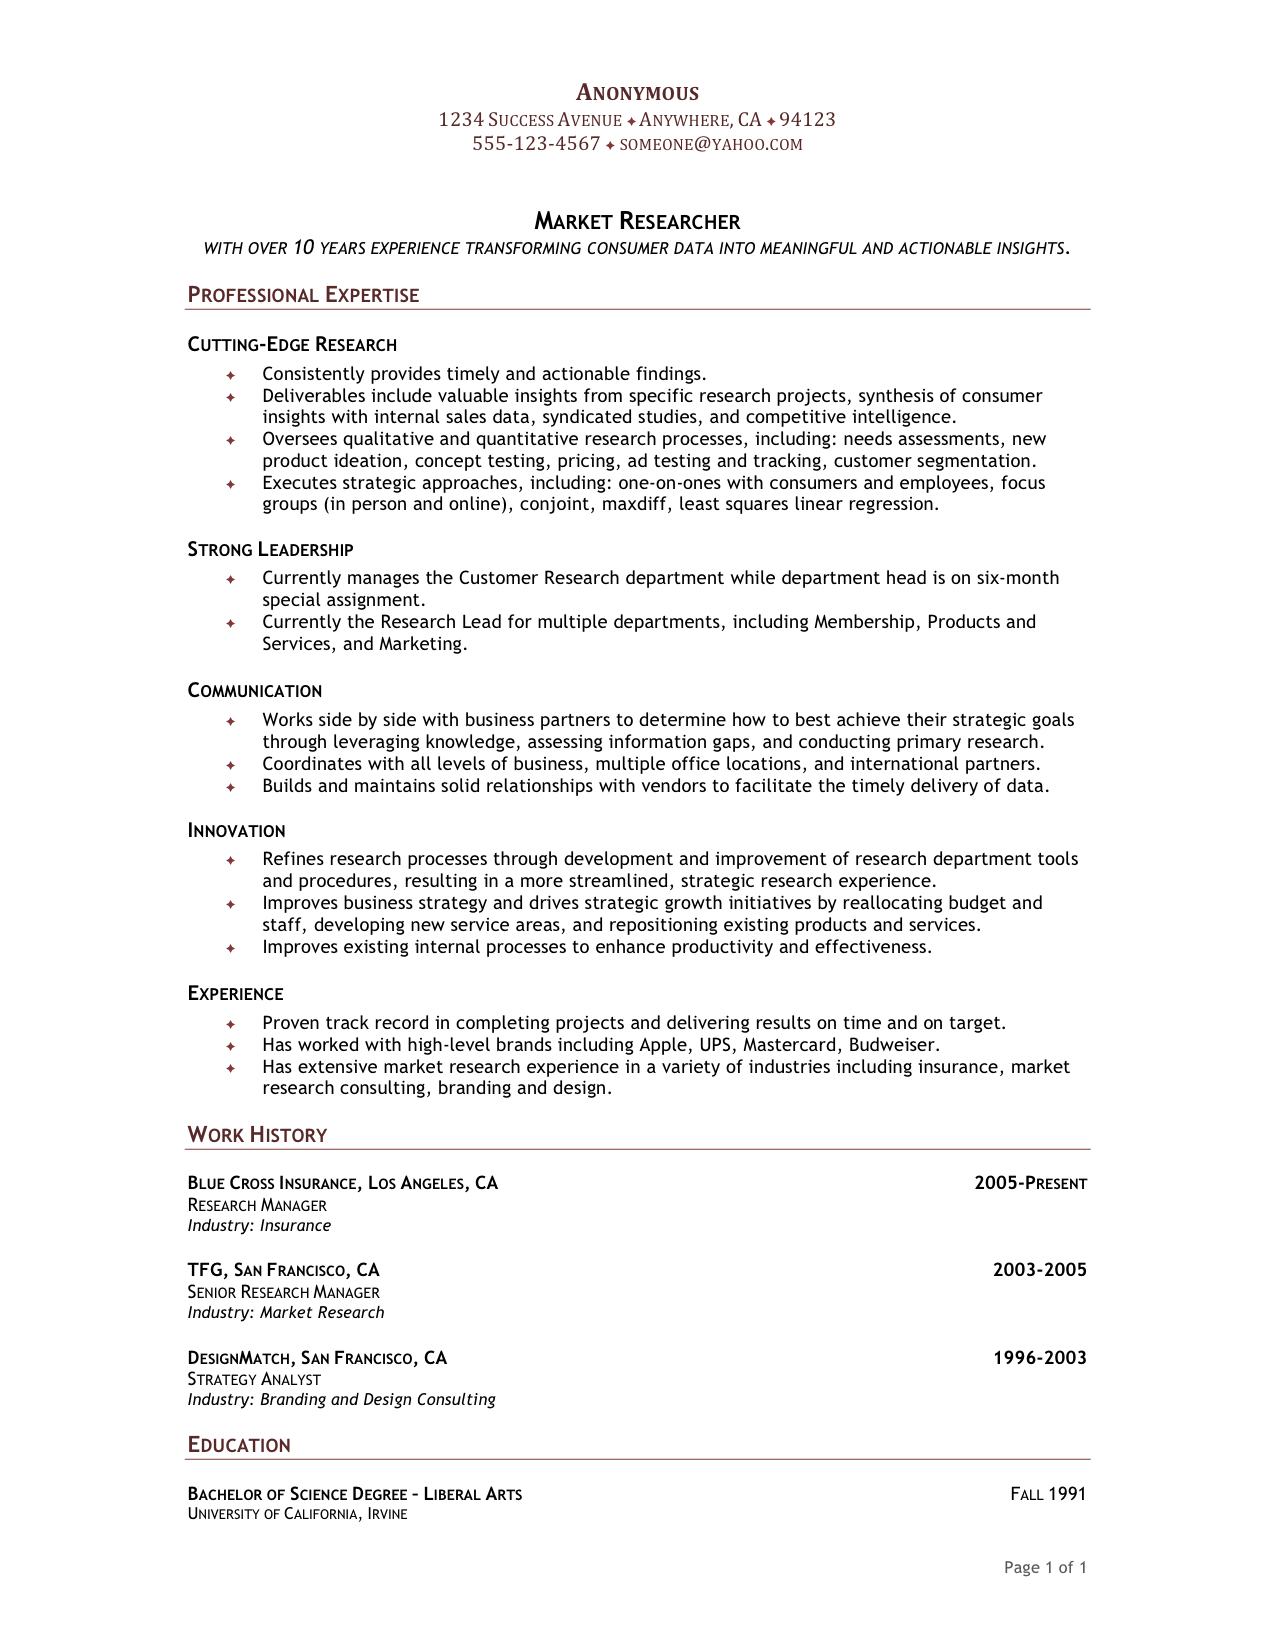 resume samples chronological vs function resume formats – robin  also functional resume format